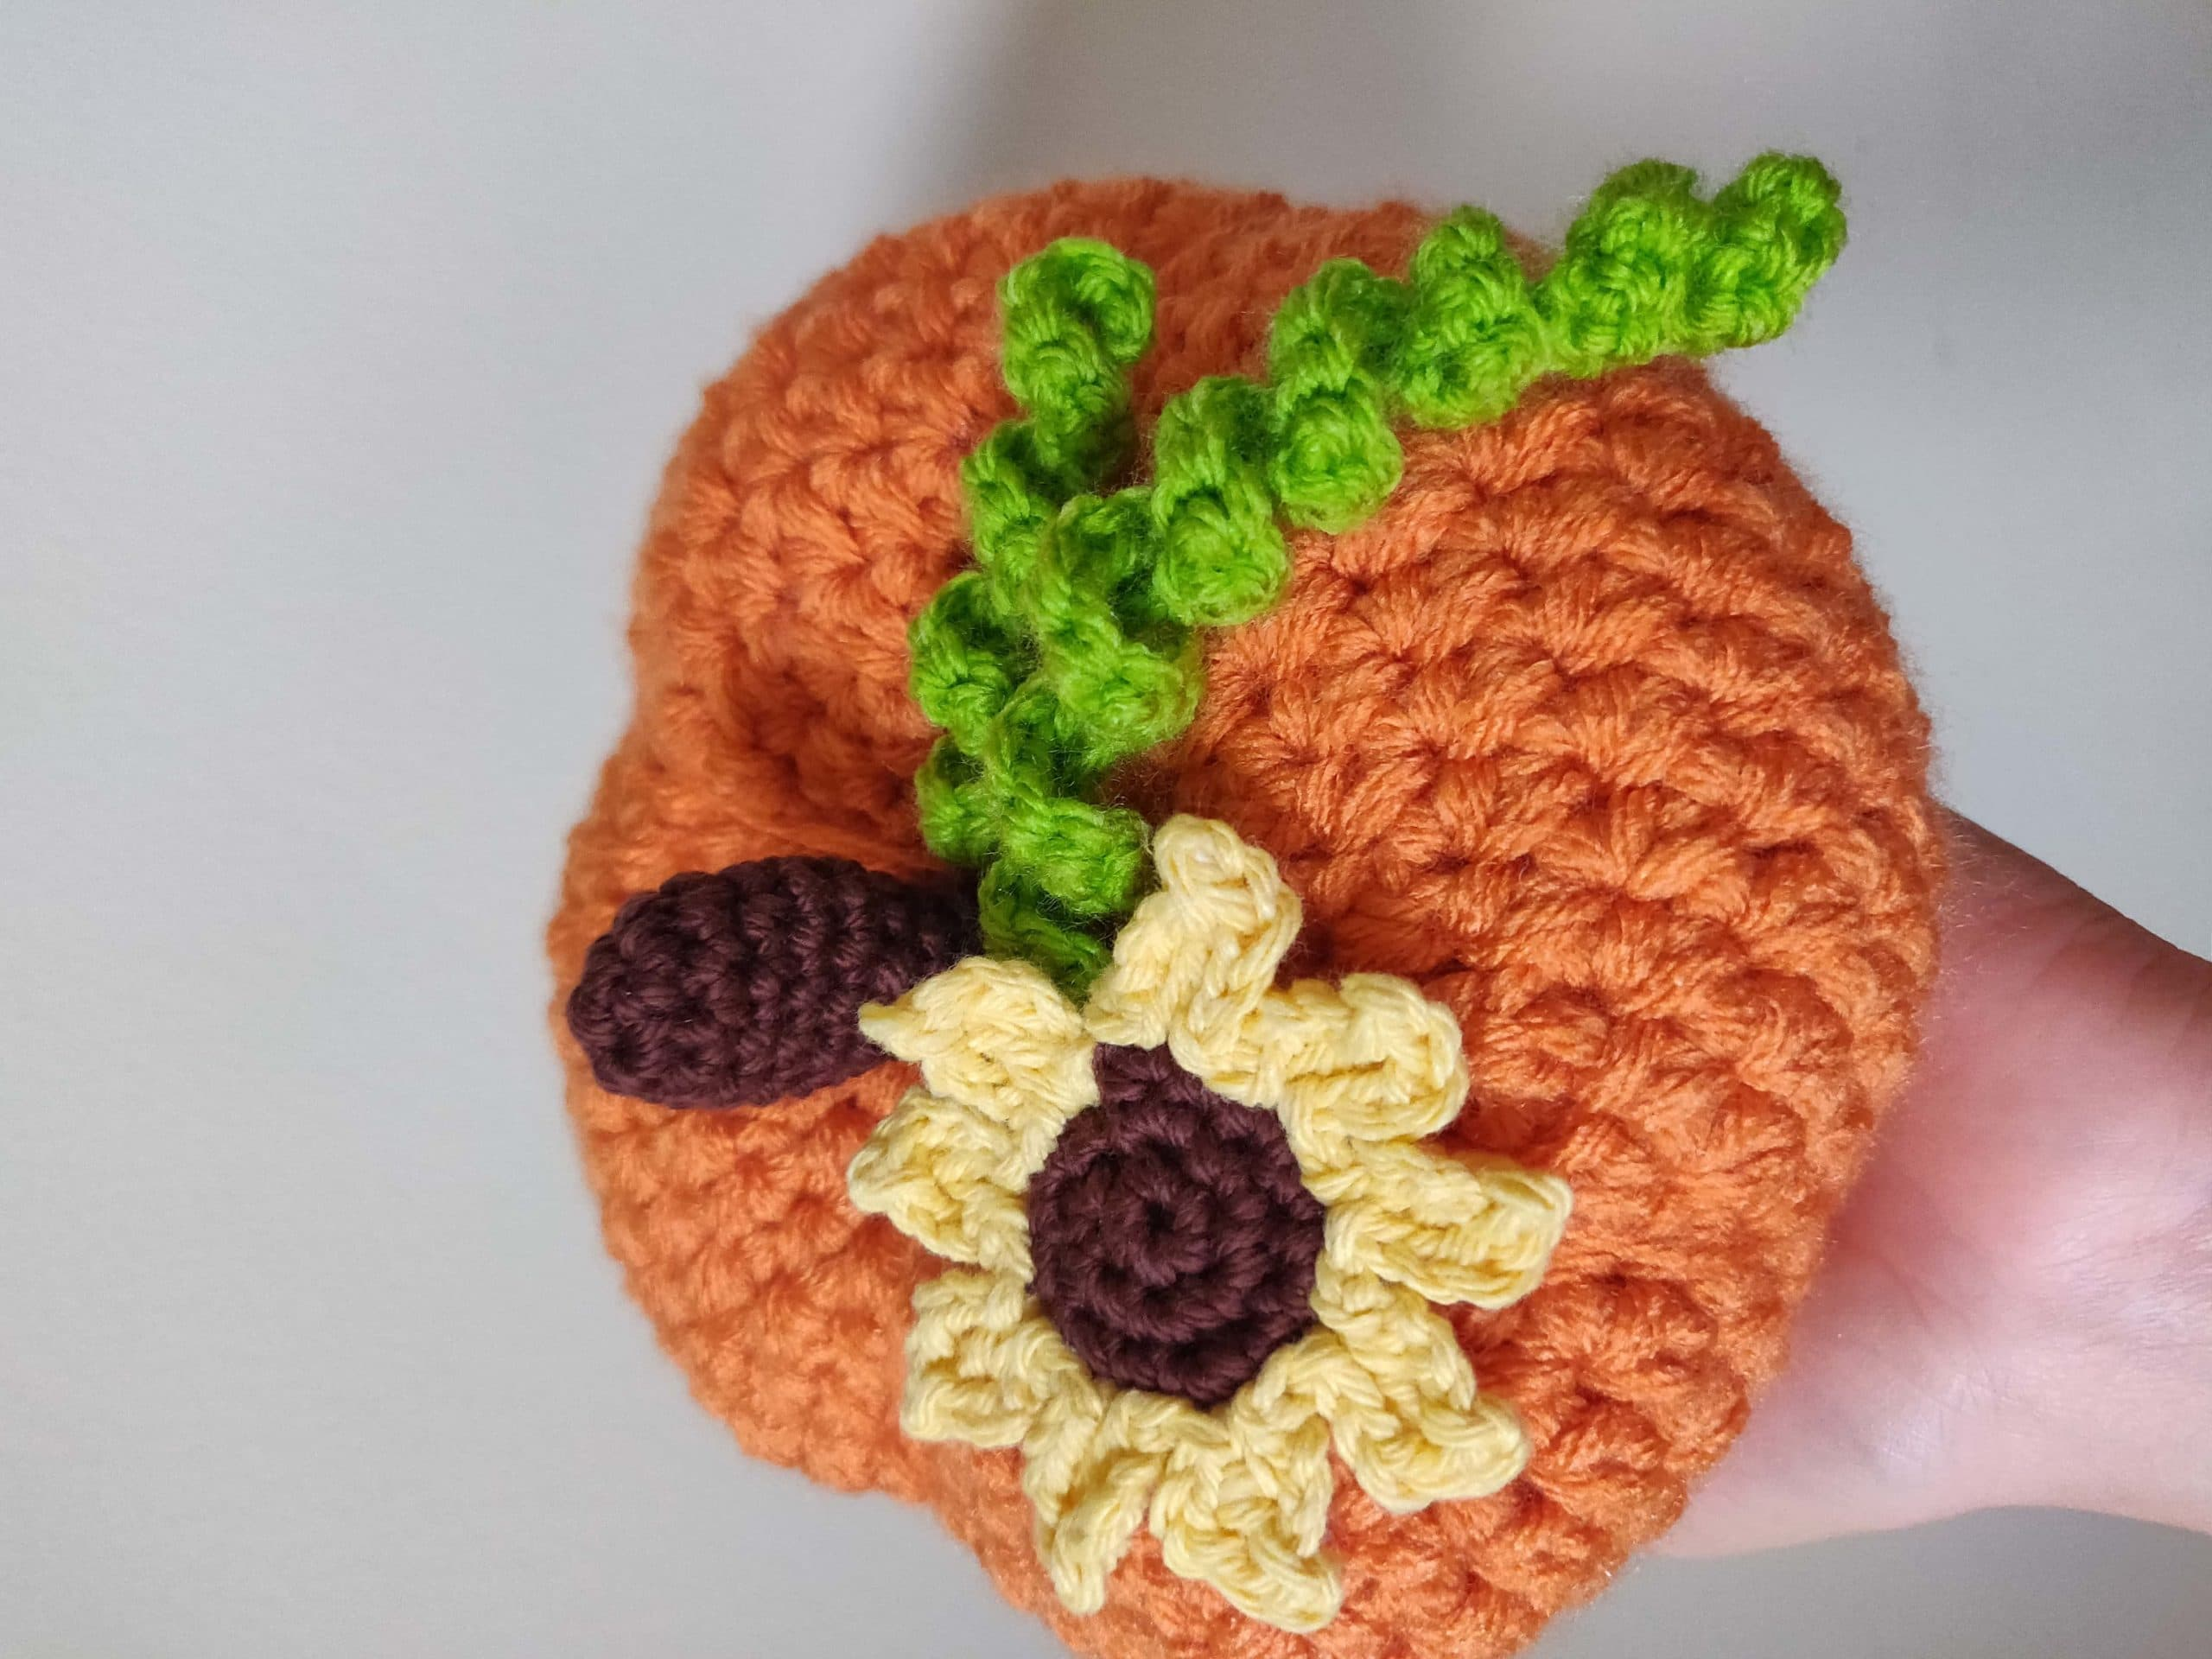 Crochet pumpkin with sunflower.